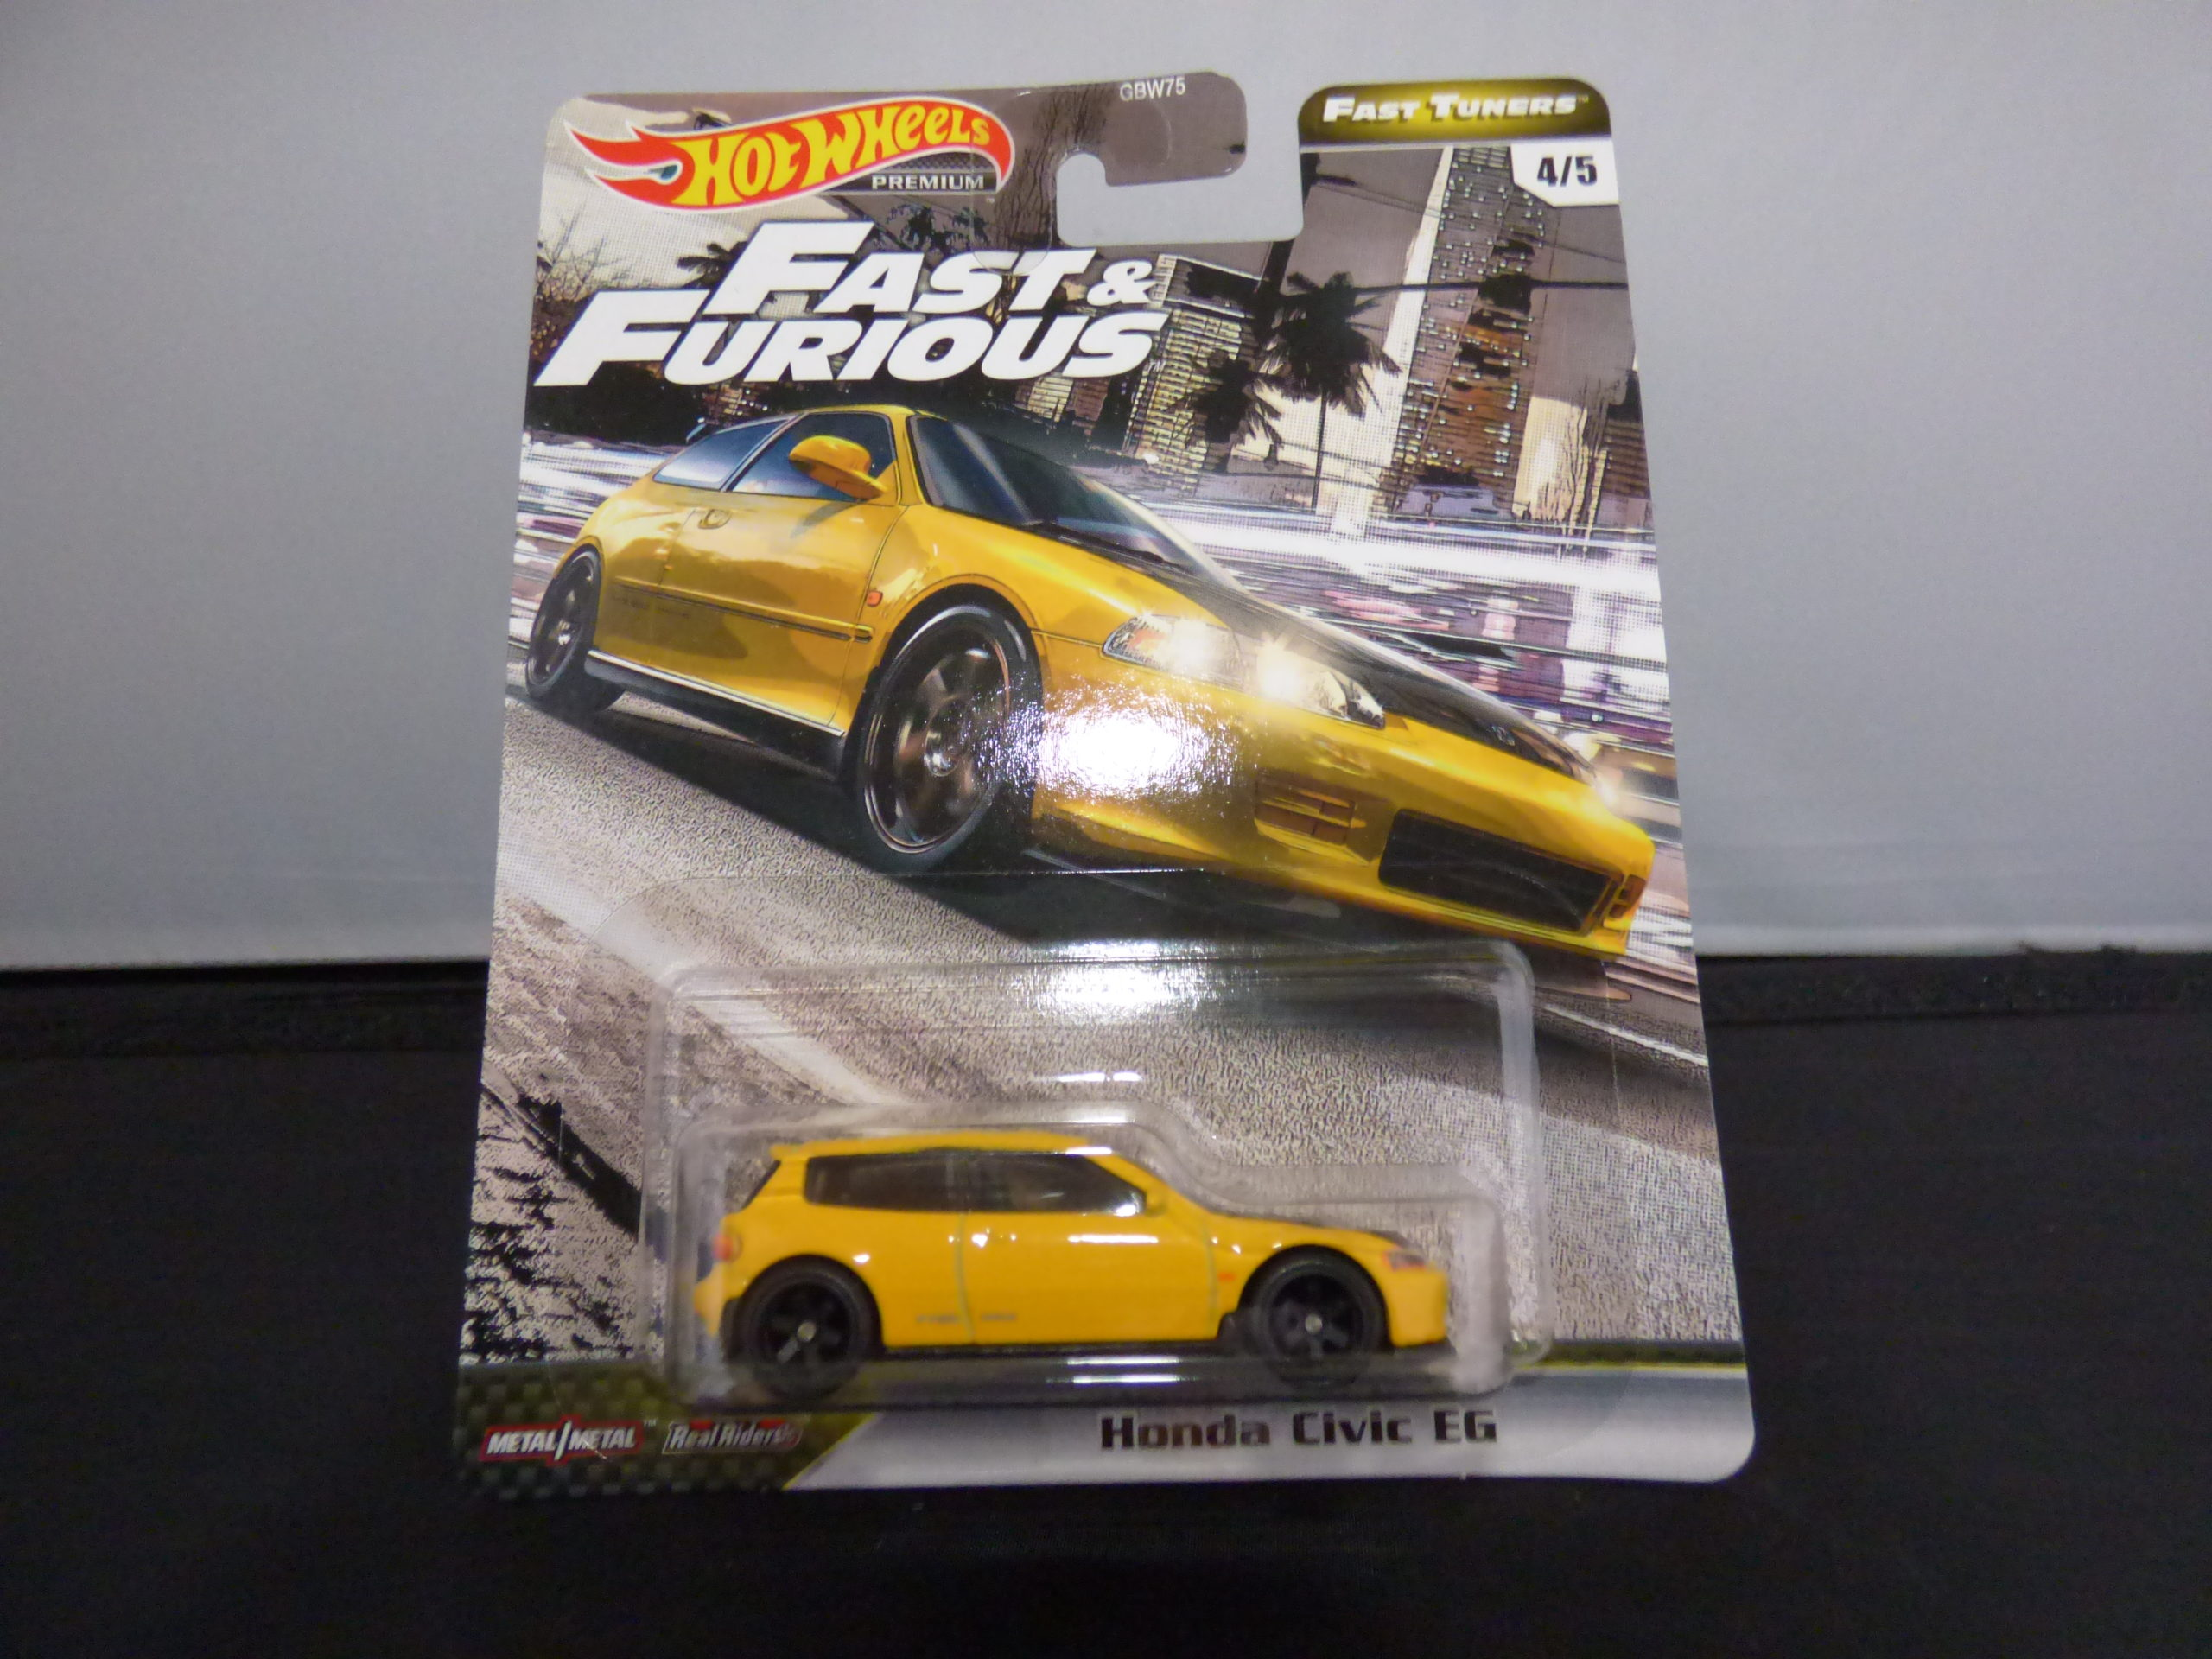 honda civic eg the fast and the furious hotwheels